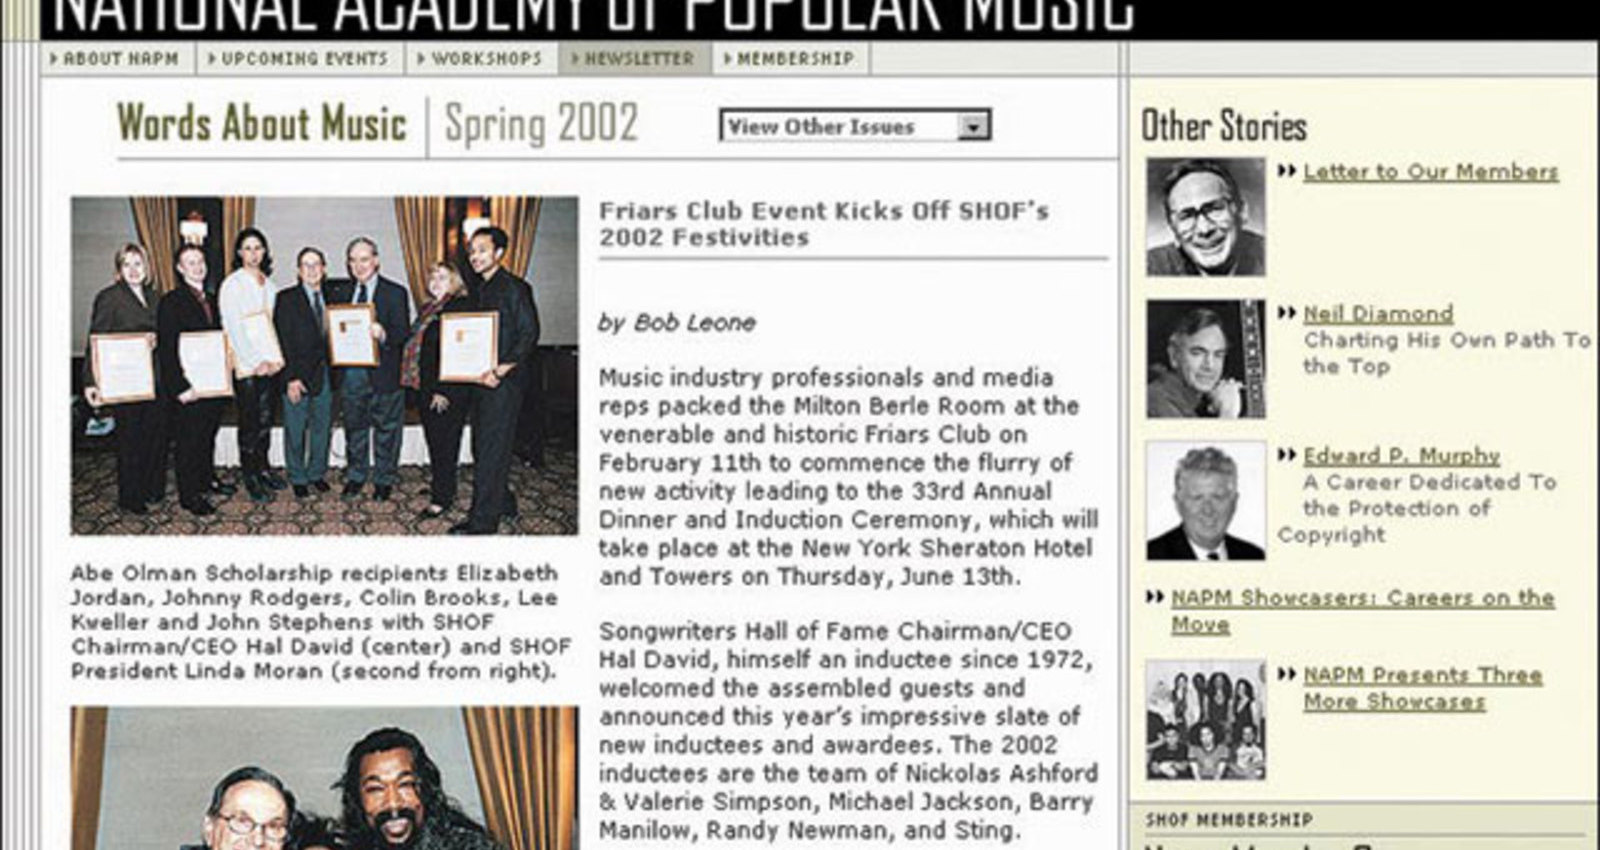 Songwriters Hall of Fame Virtual Museum